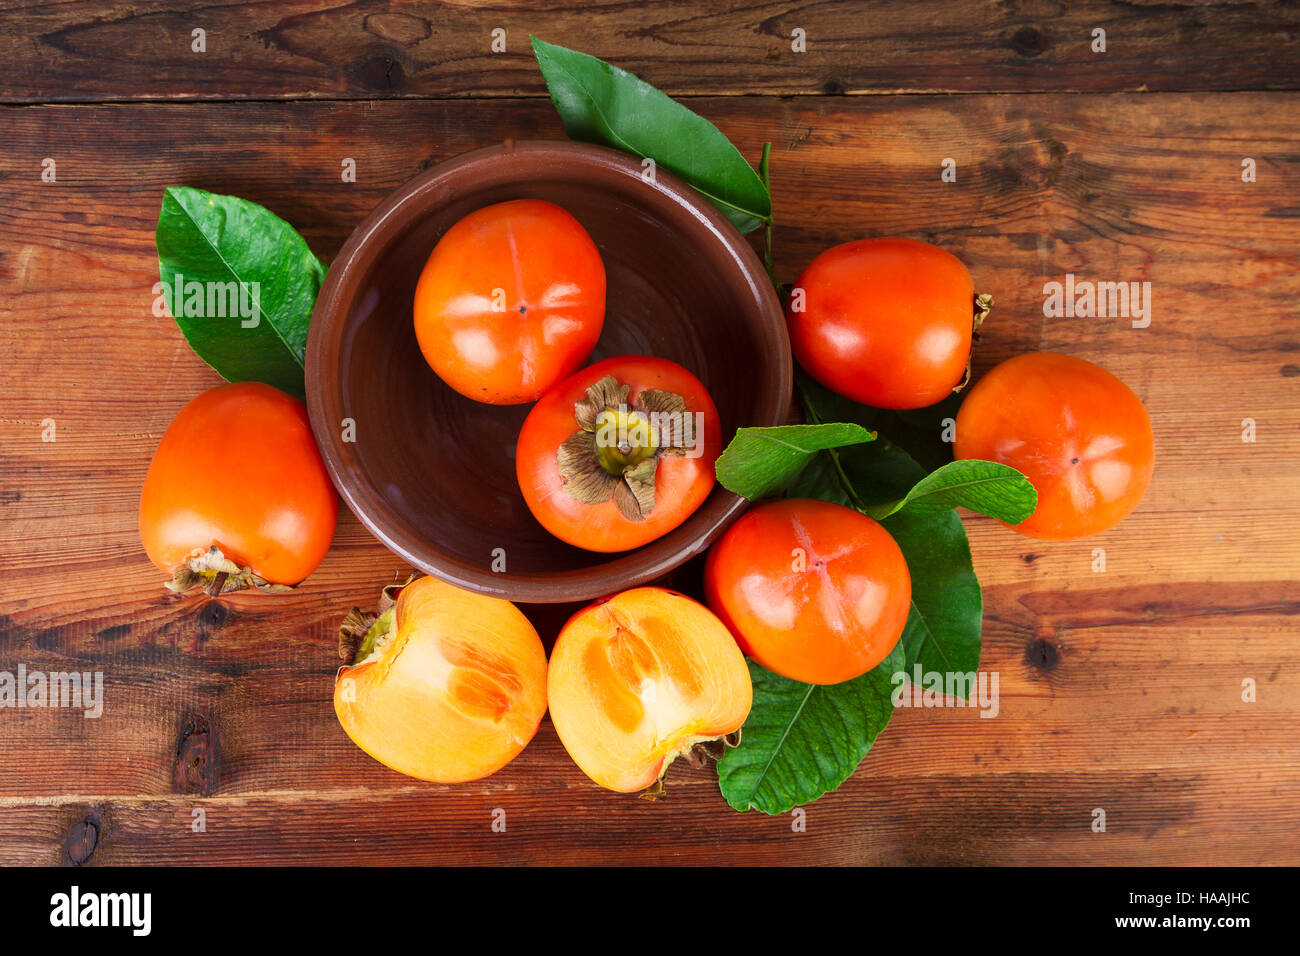 Persimmons kaki fruits on rustic table. Top view. - Stock Image